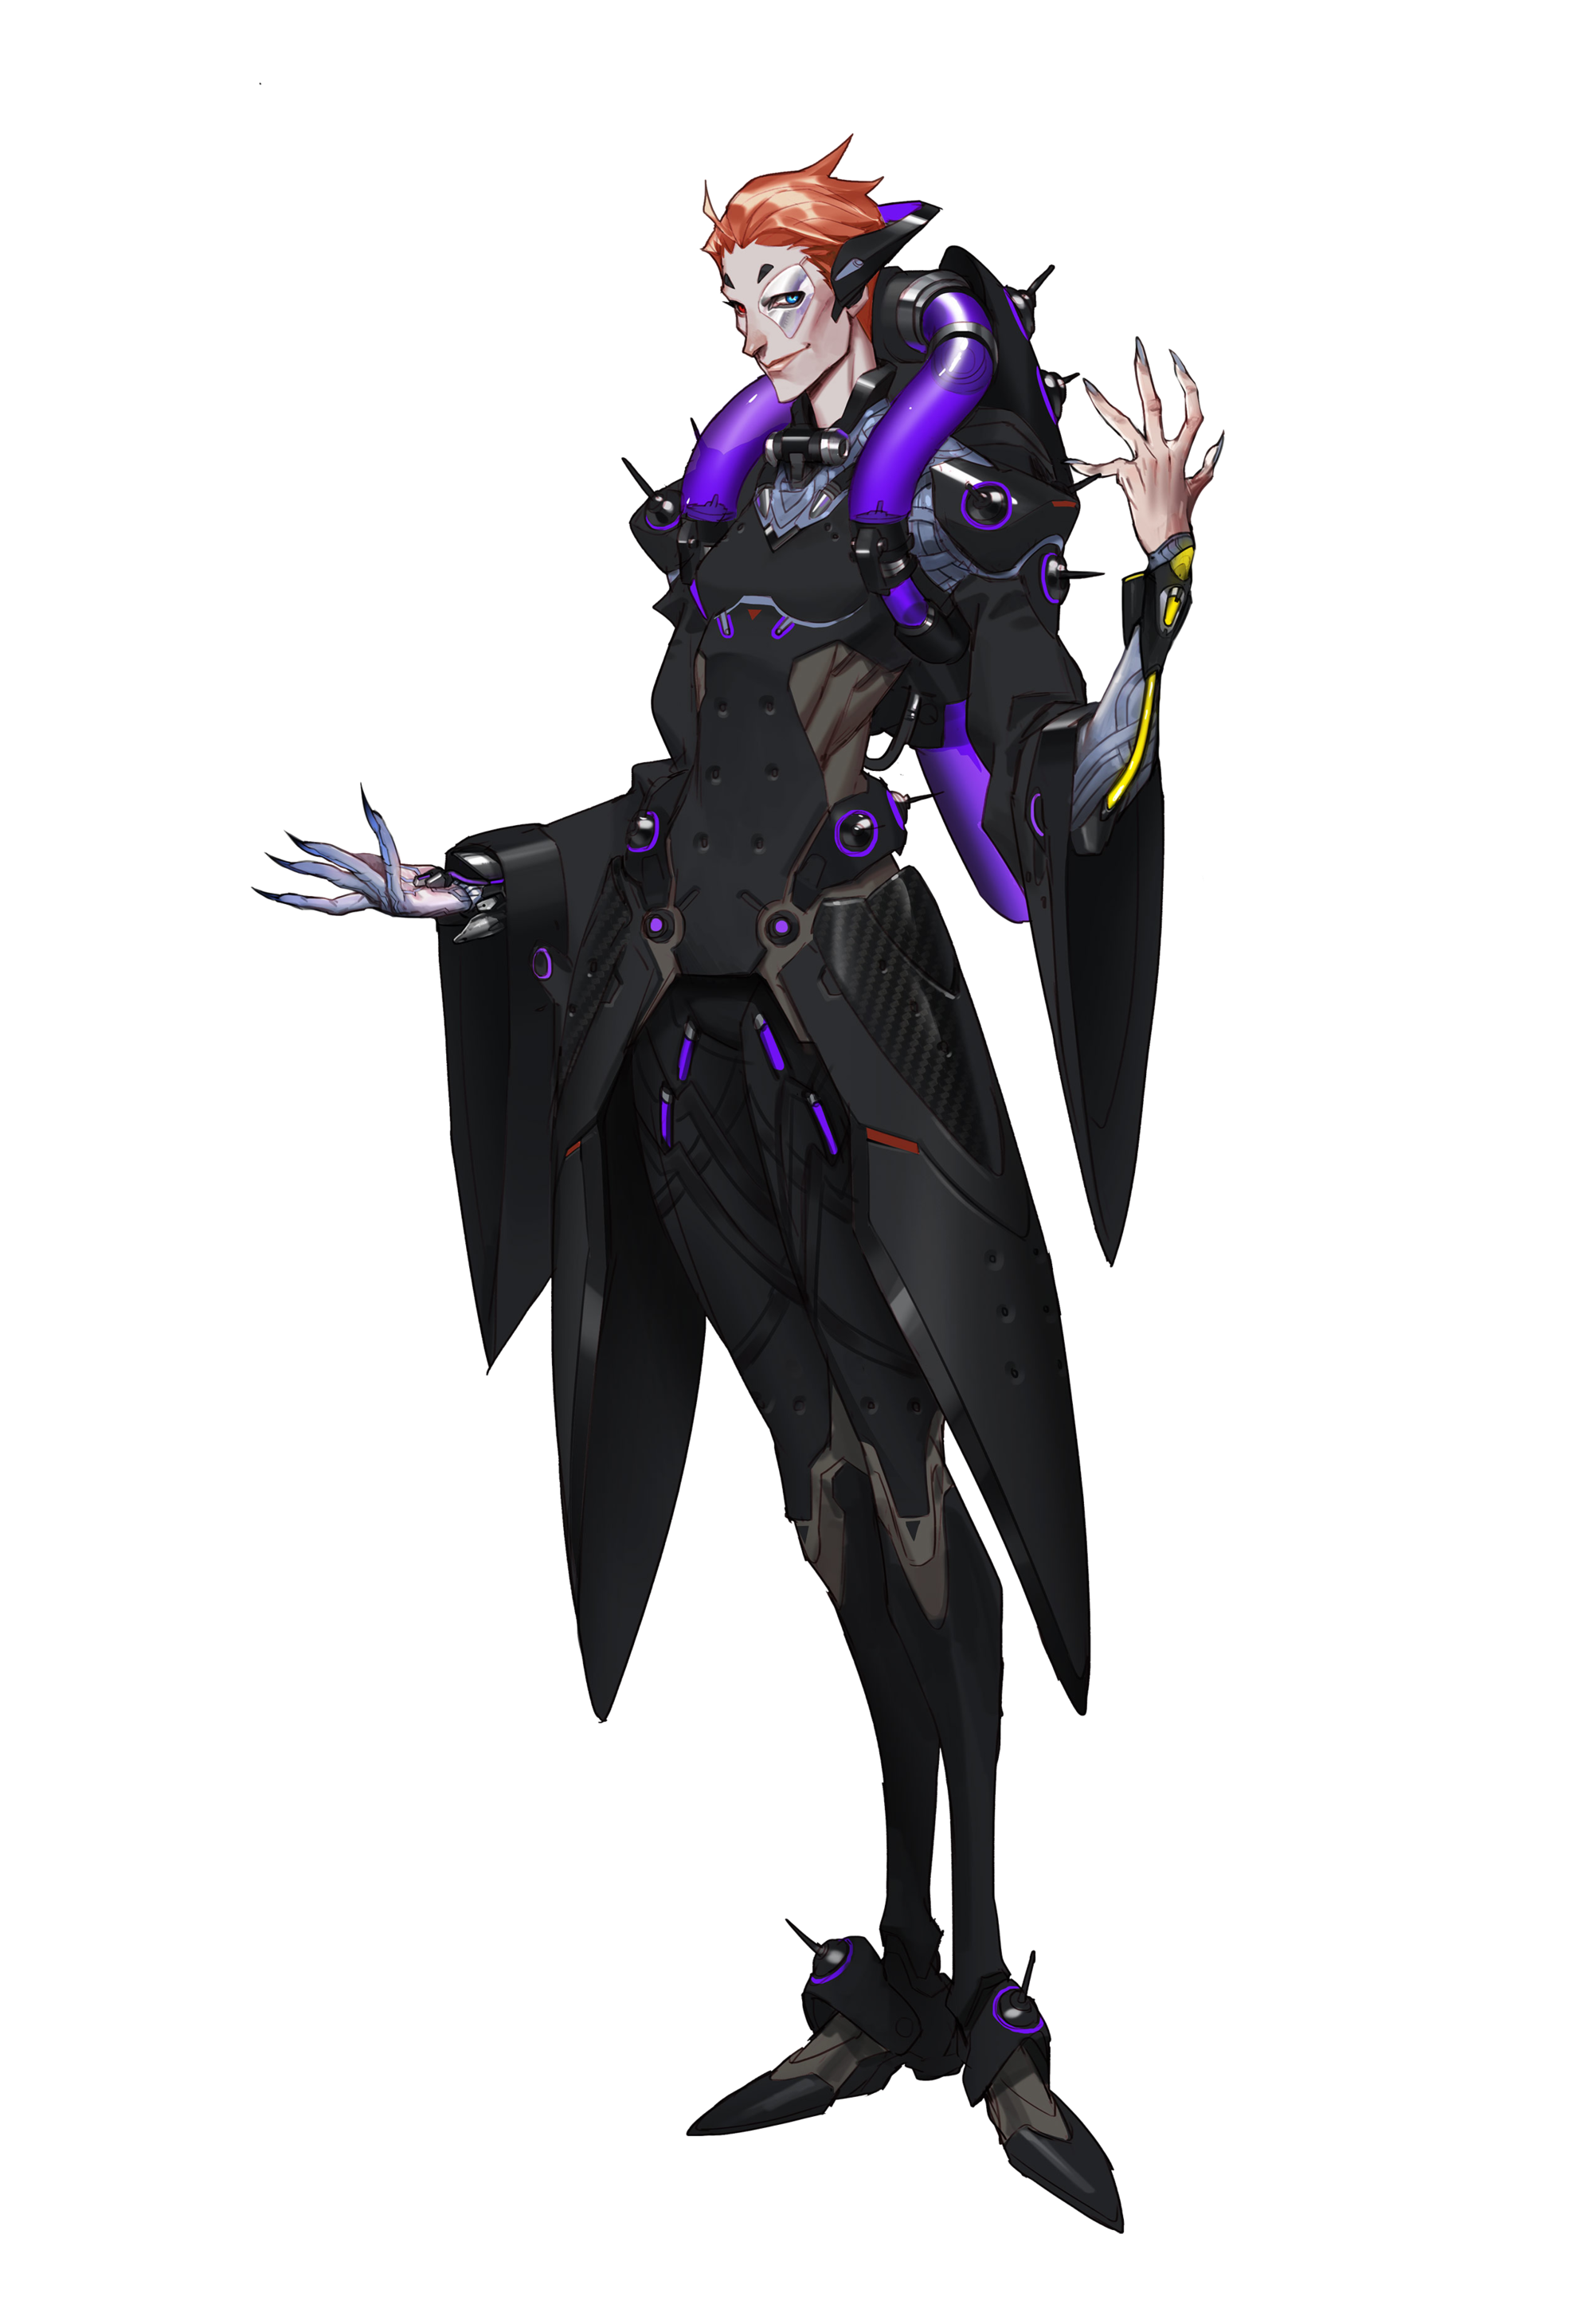 Moira overwatch png. Character profile wikia fandom